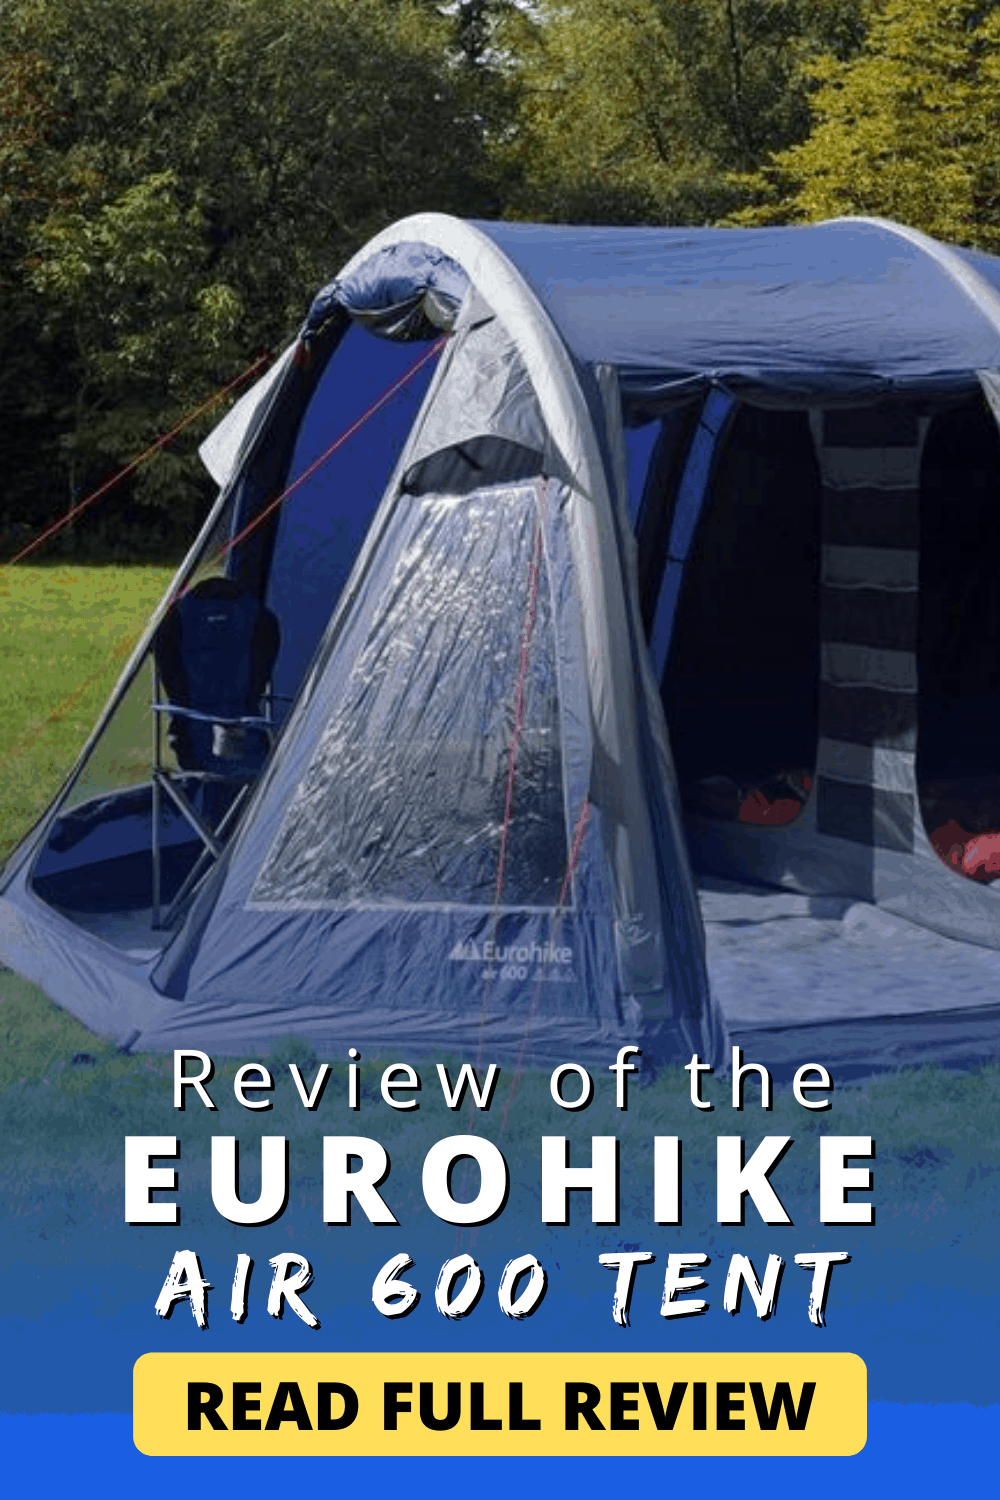 Review of the EUROHIKE Air 600 Tent | Read Now!